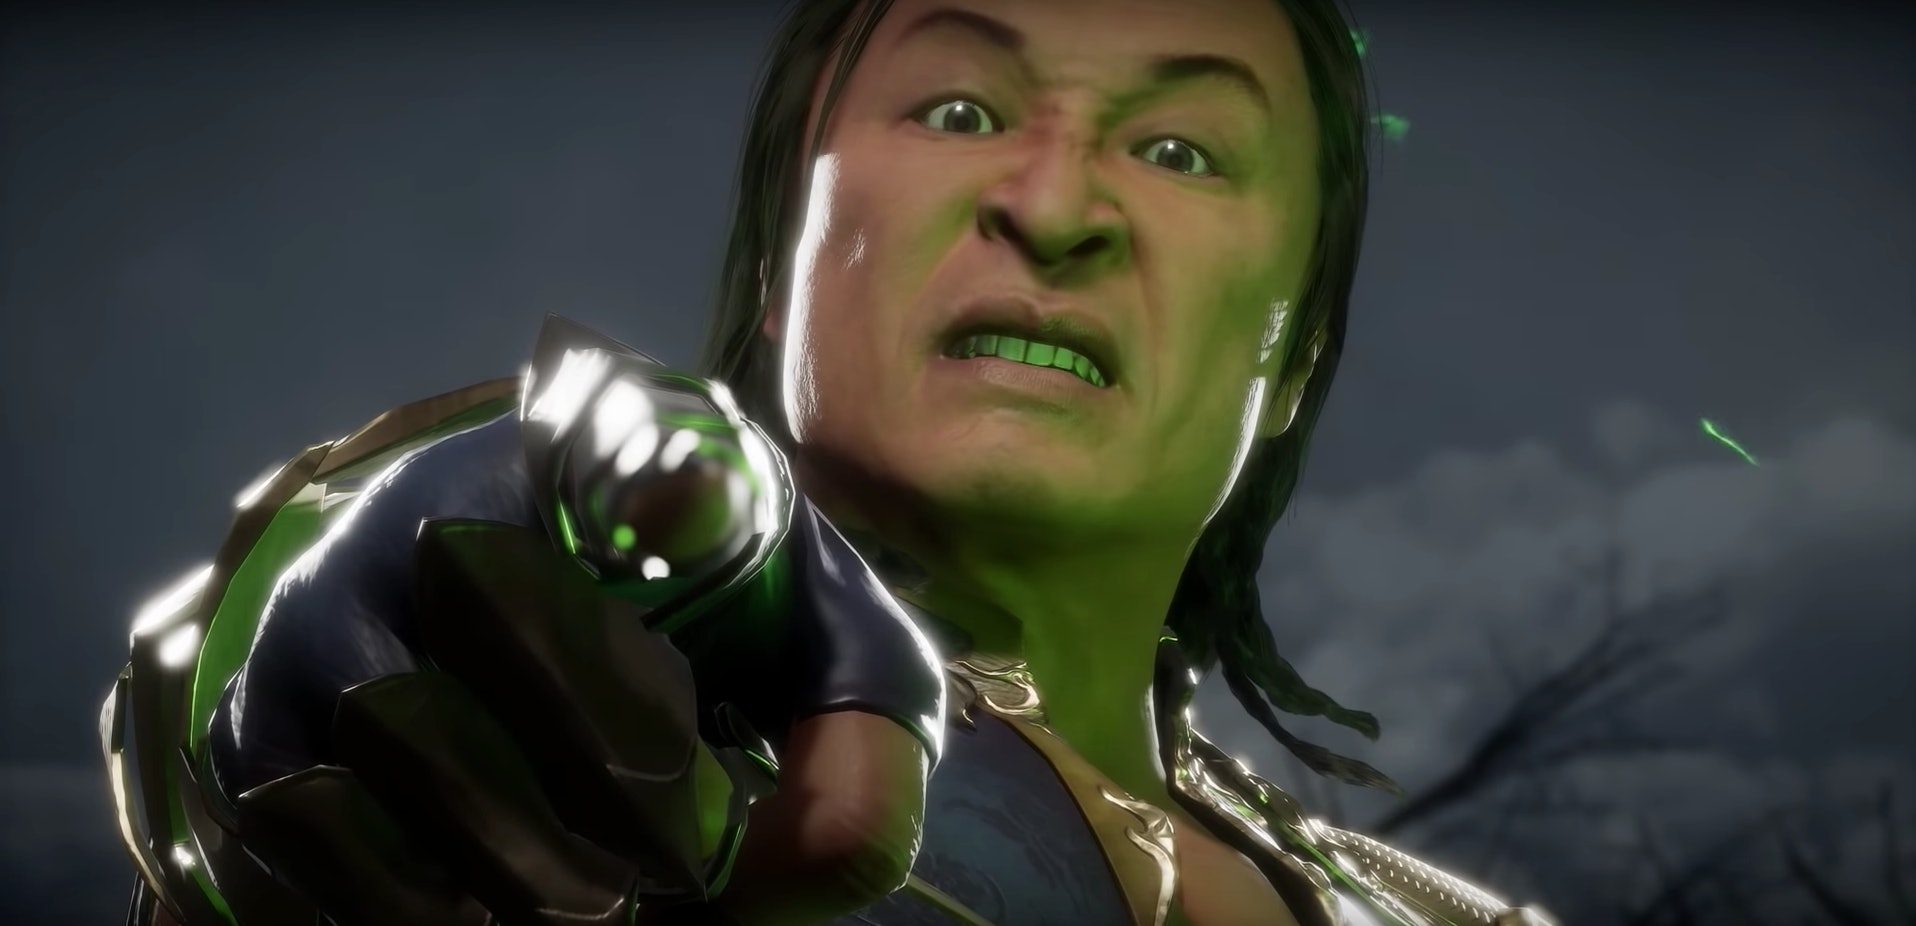 Mortal Kombat Movie 2021 Release Date And Cast For The James Wan